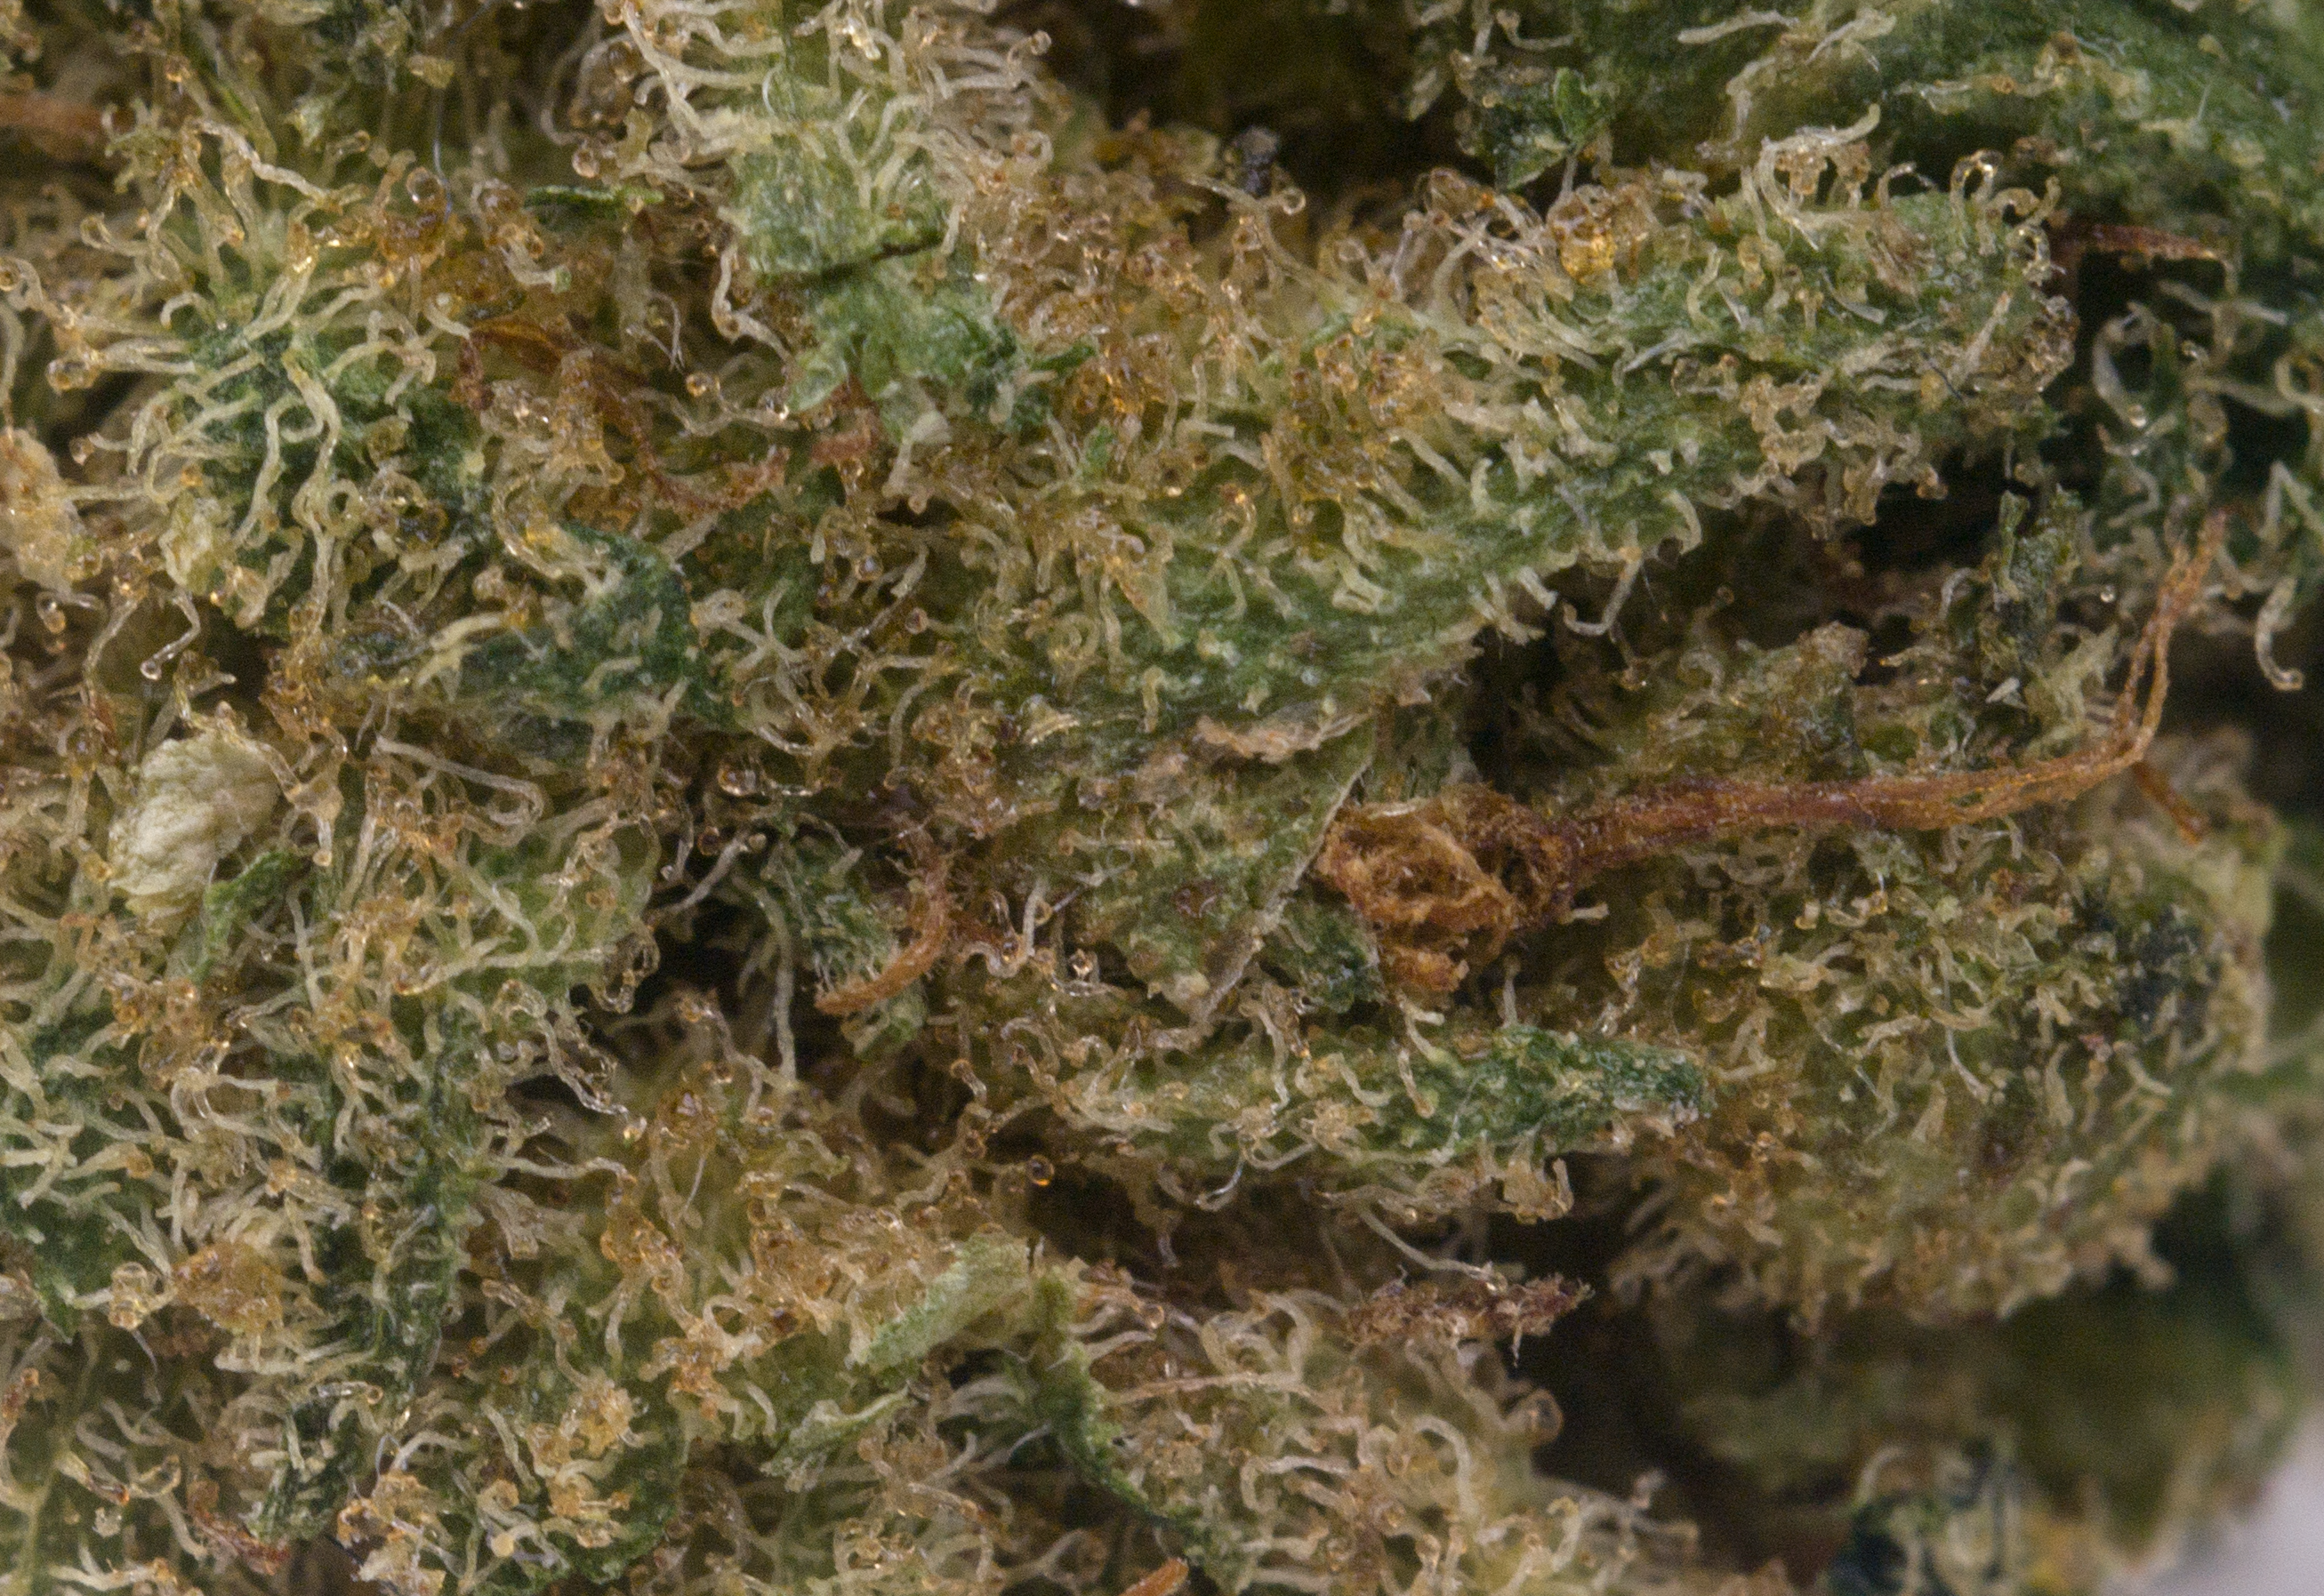 Macro showing large amount of amber trichomes and some damaged trichomes